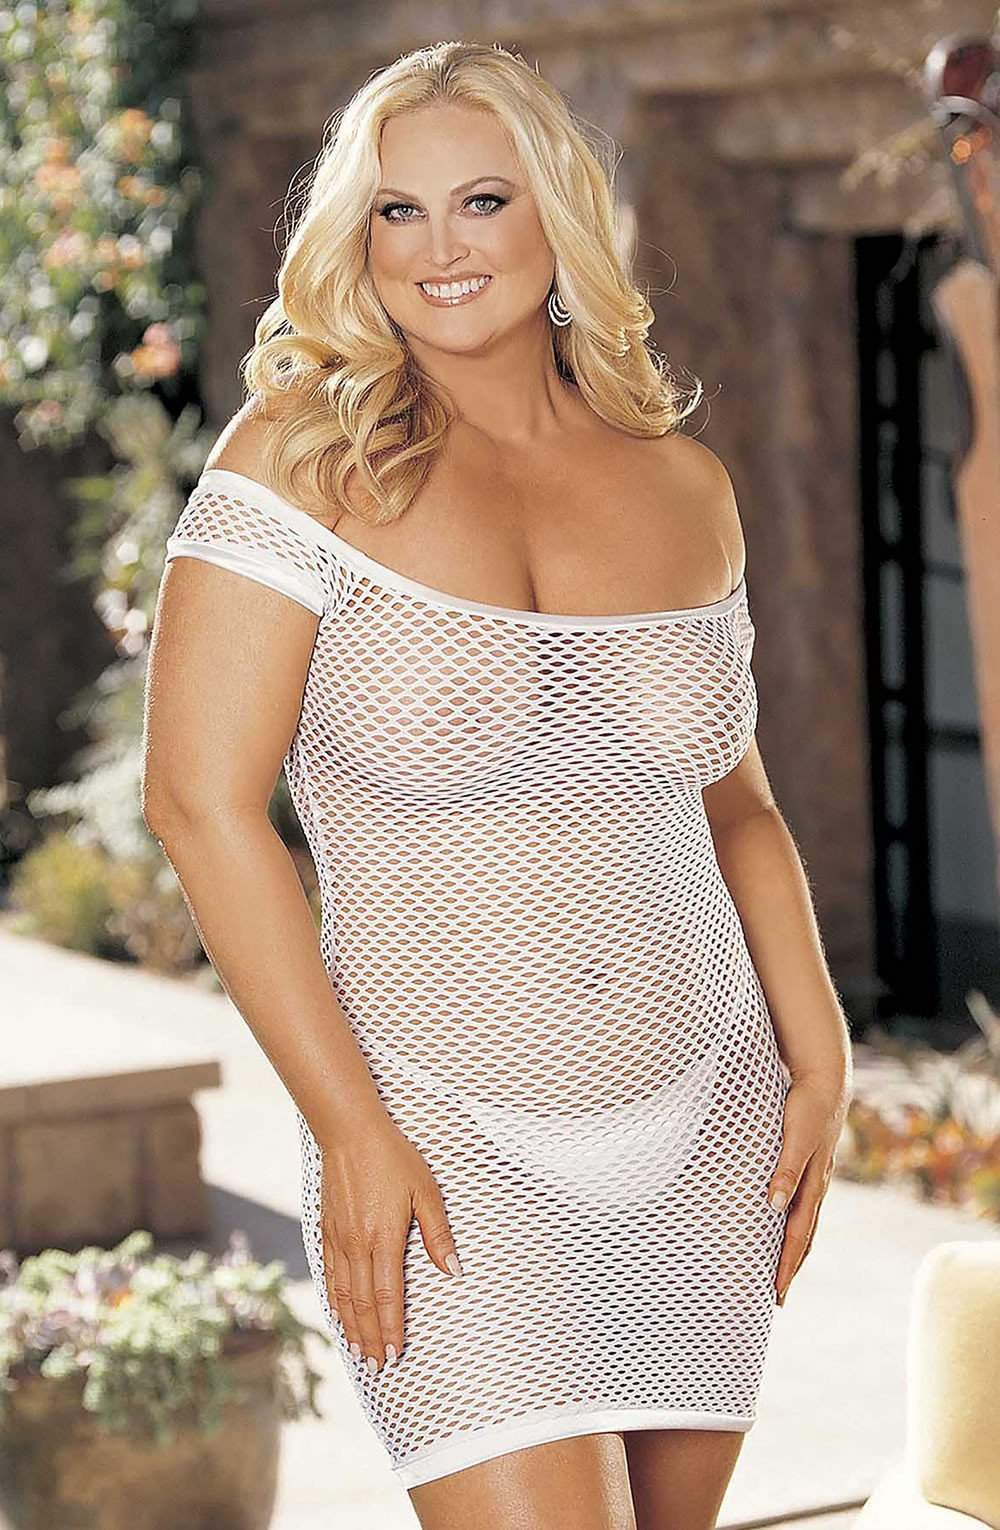 SoH-HL 96896Q (Plus Size) White - Shirley of Hollywood - Katys Boutique Lingerie USA